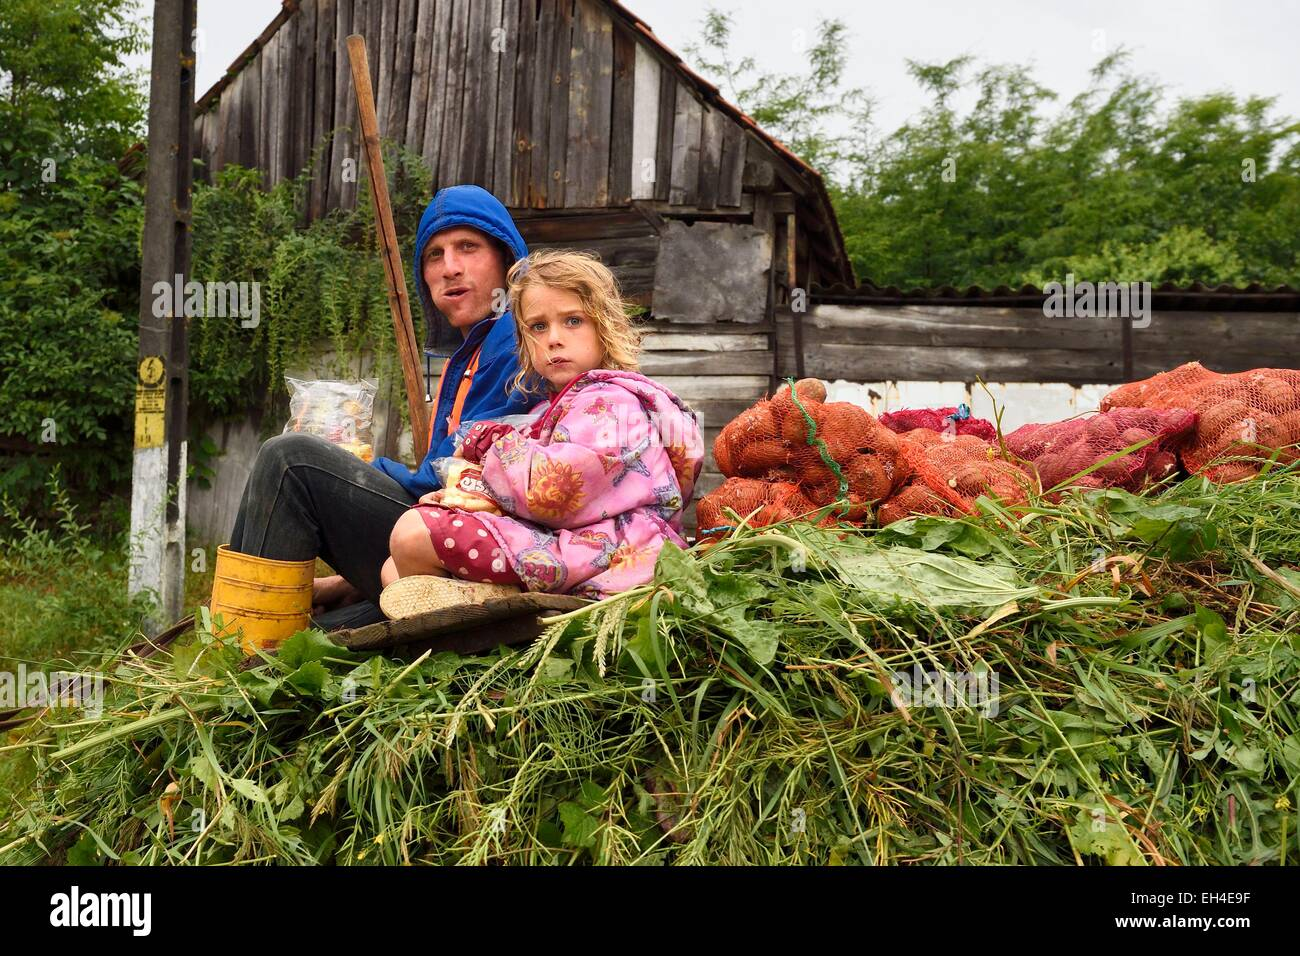 Romania, Transylvania, Biertan, transport of hay in a horse cart - Stock Image